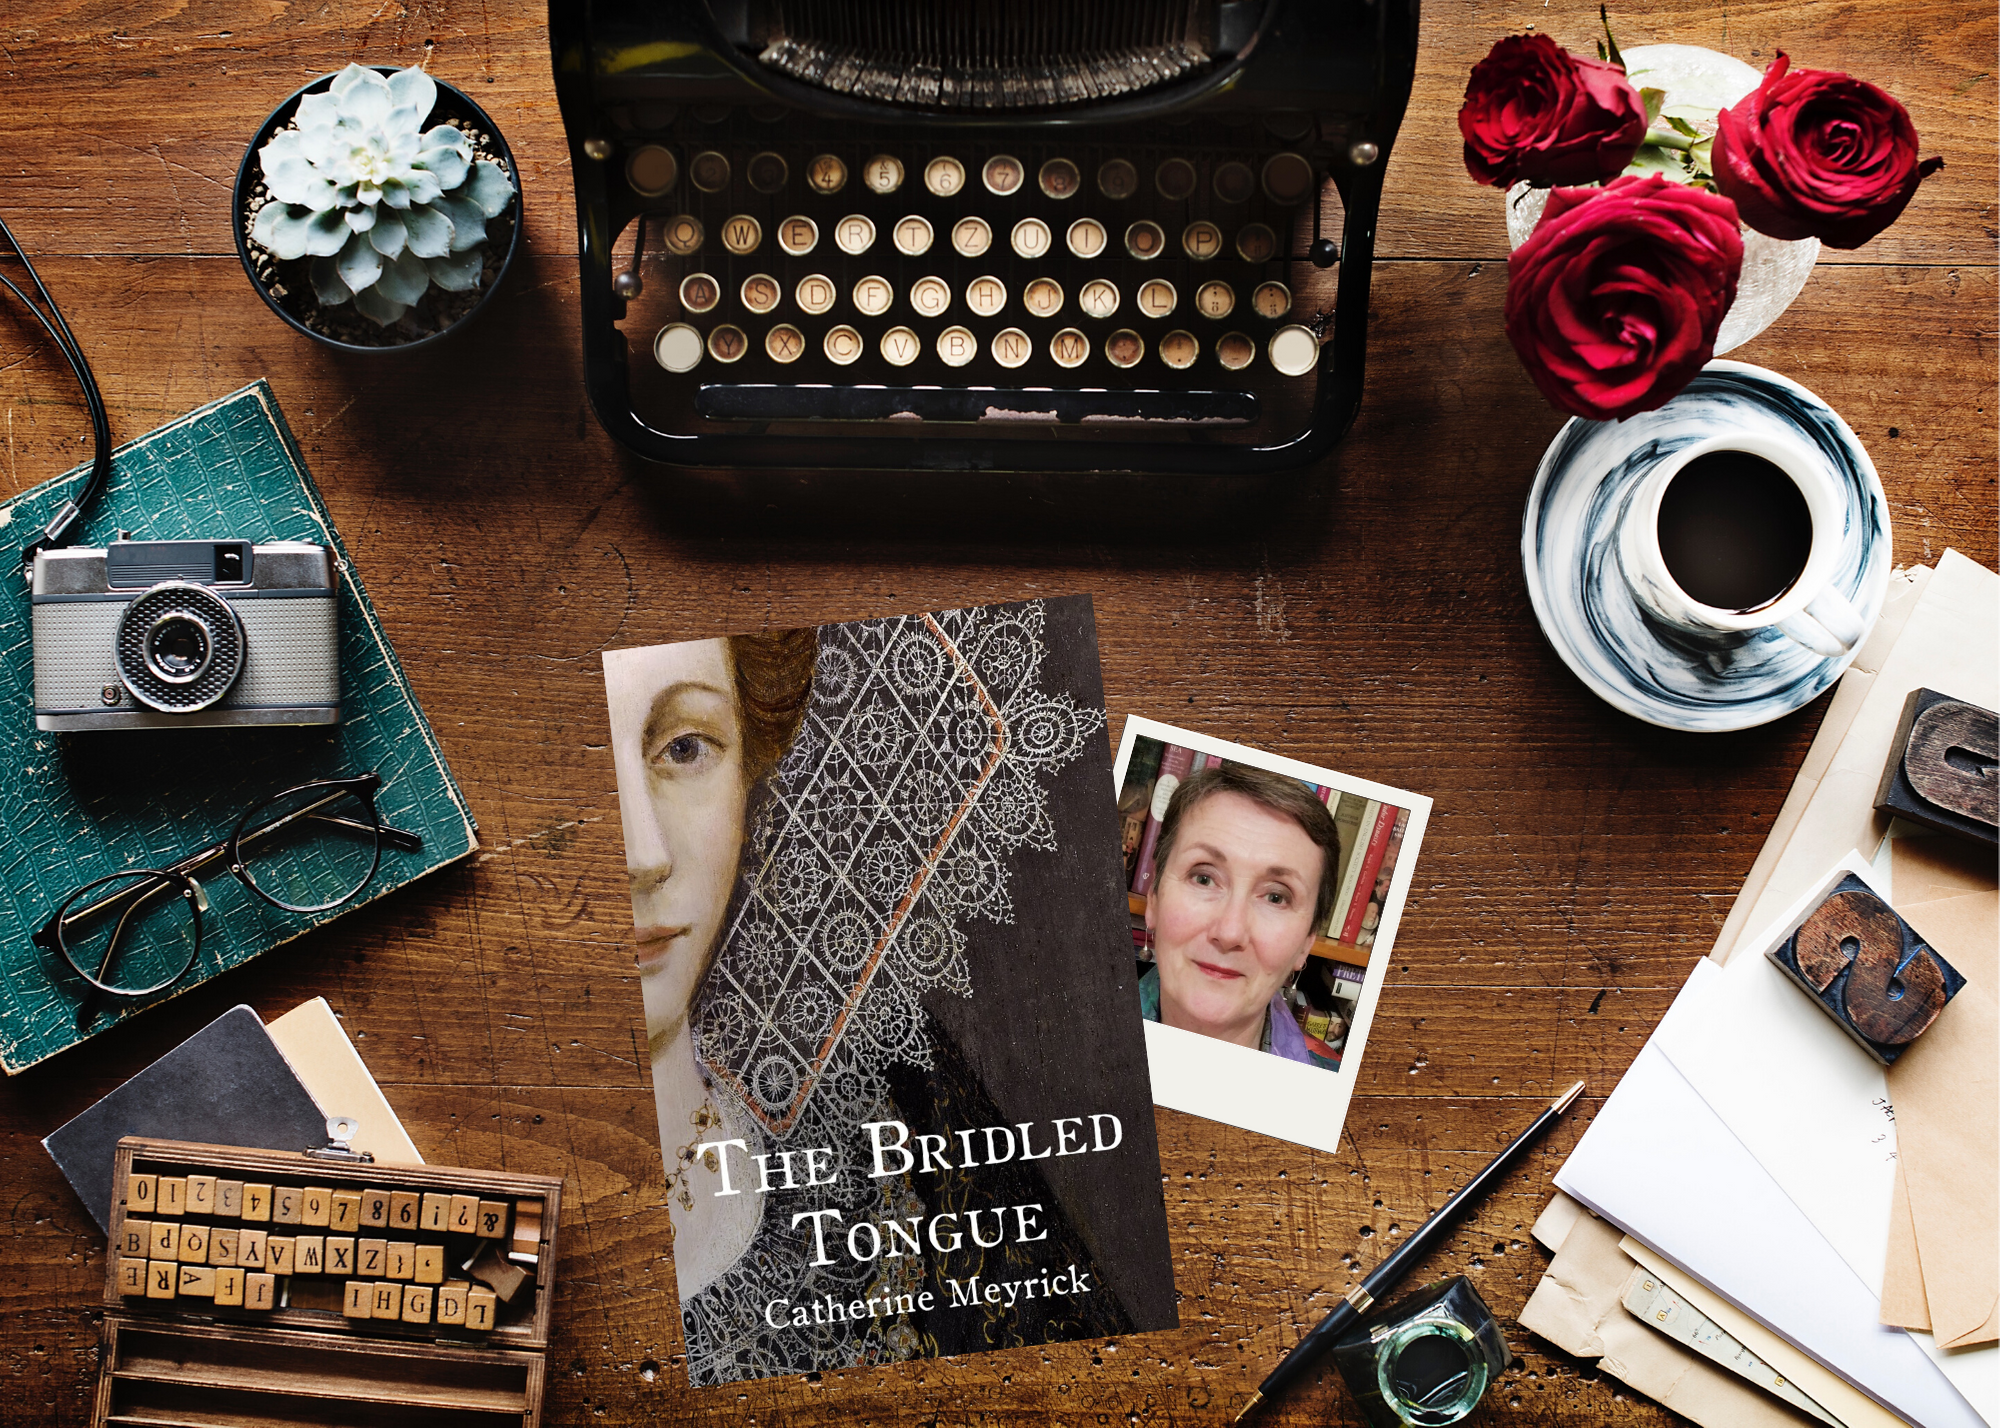 Catherine Meyrick's THE BRIDLED TONGUE